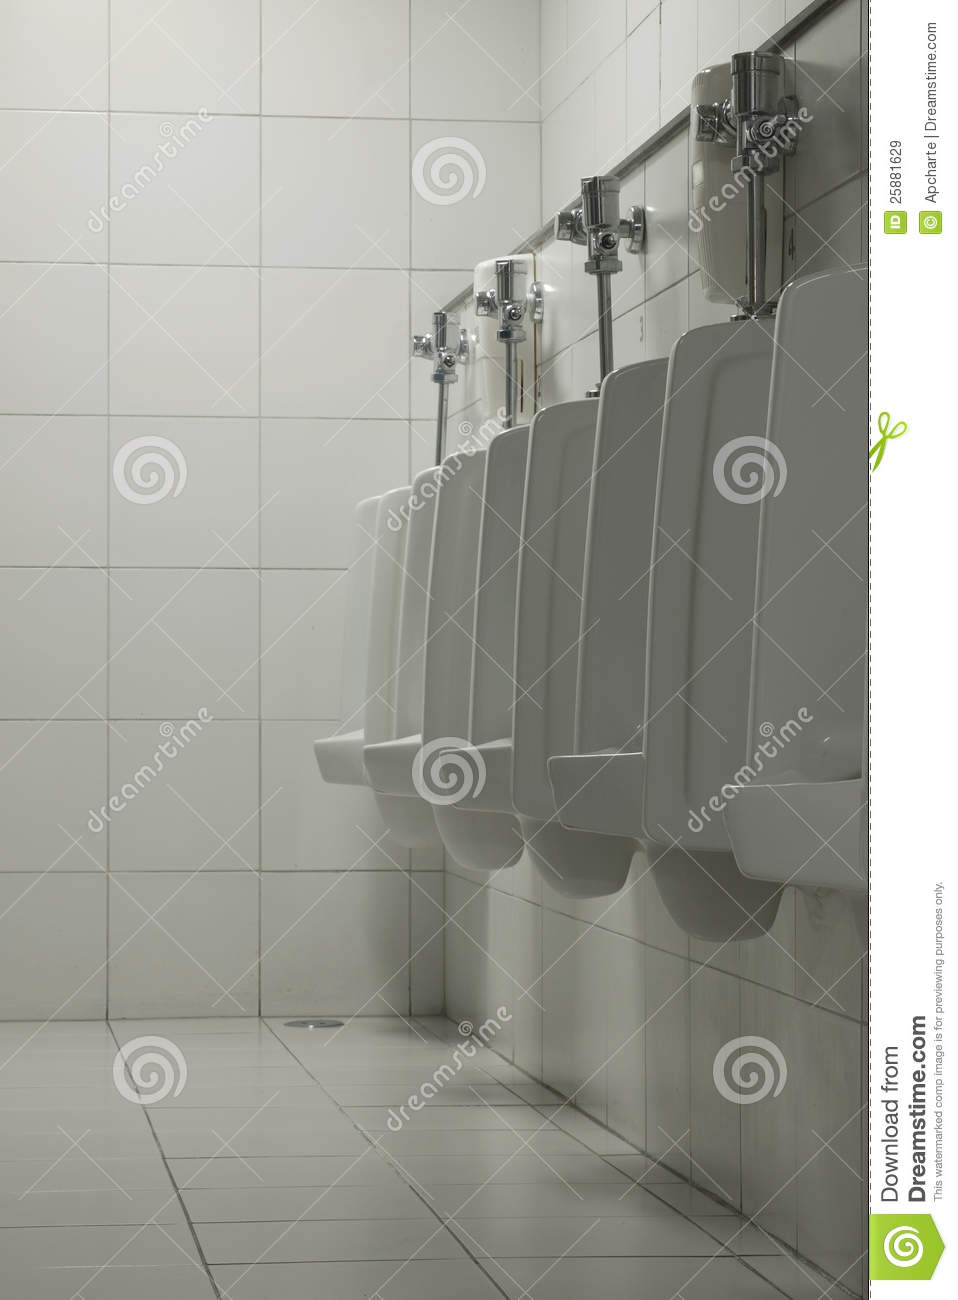 The Men Restroom With The Sanitary Wares Mr No Pr No 0 516 0